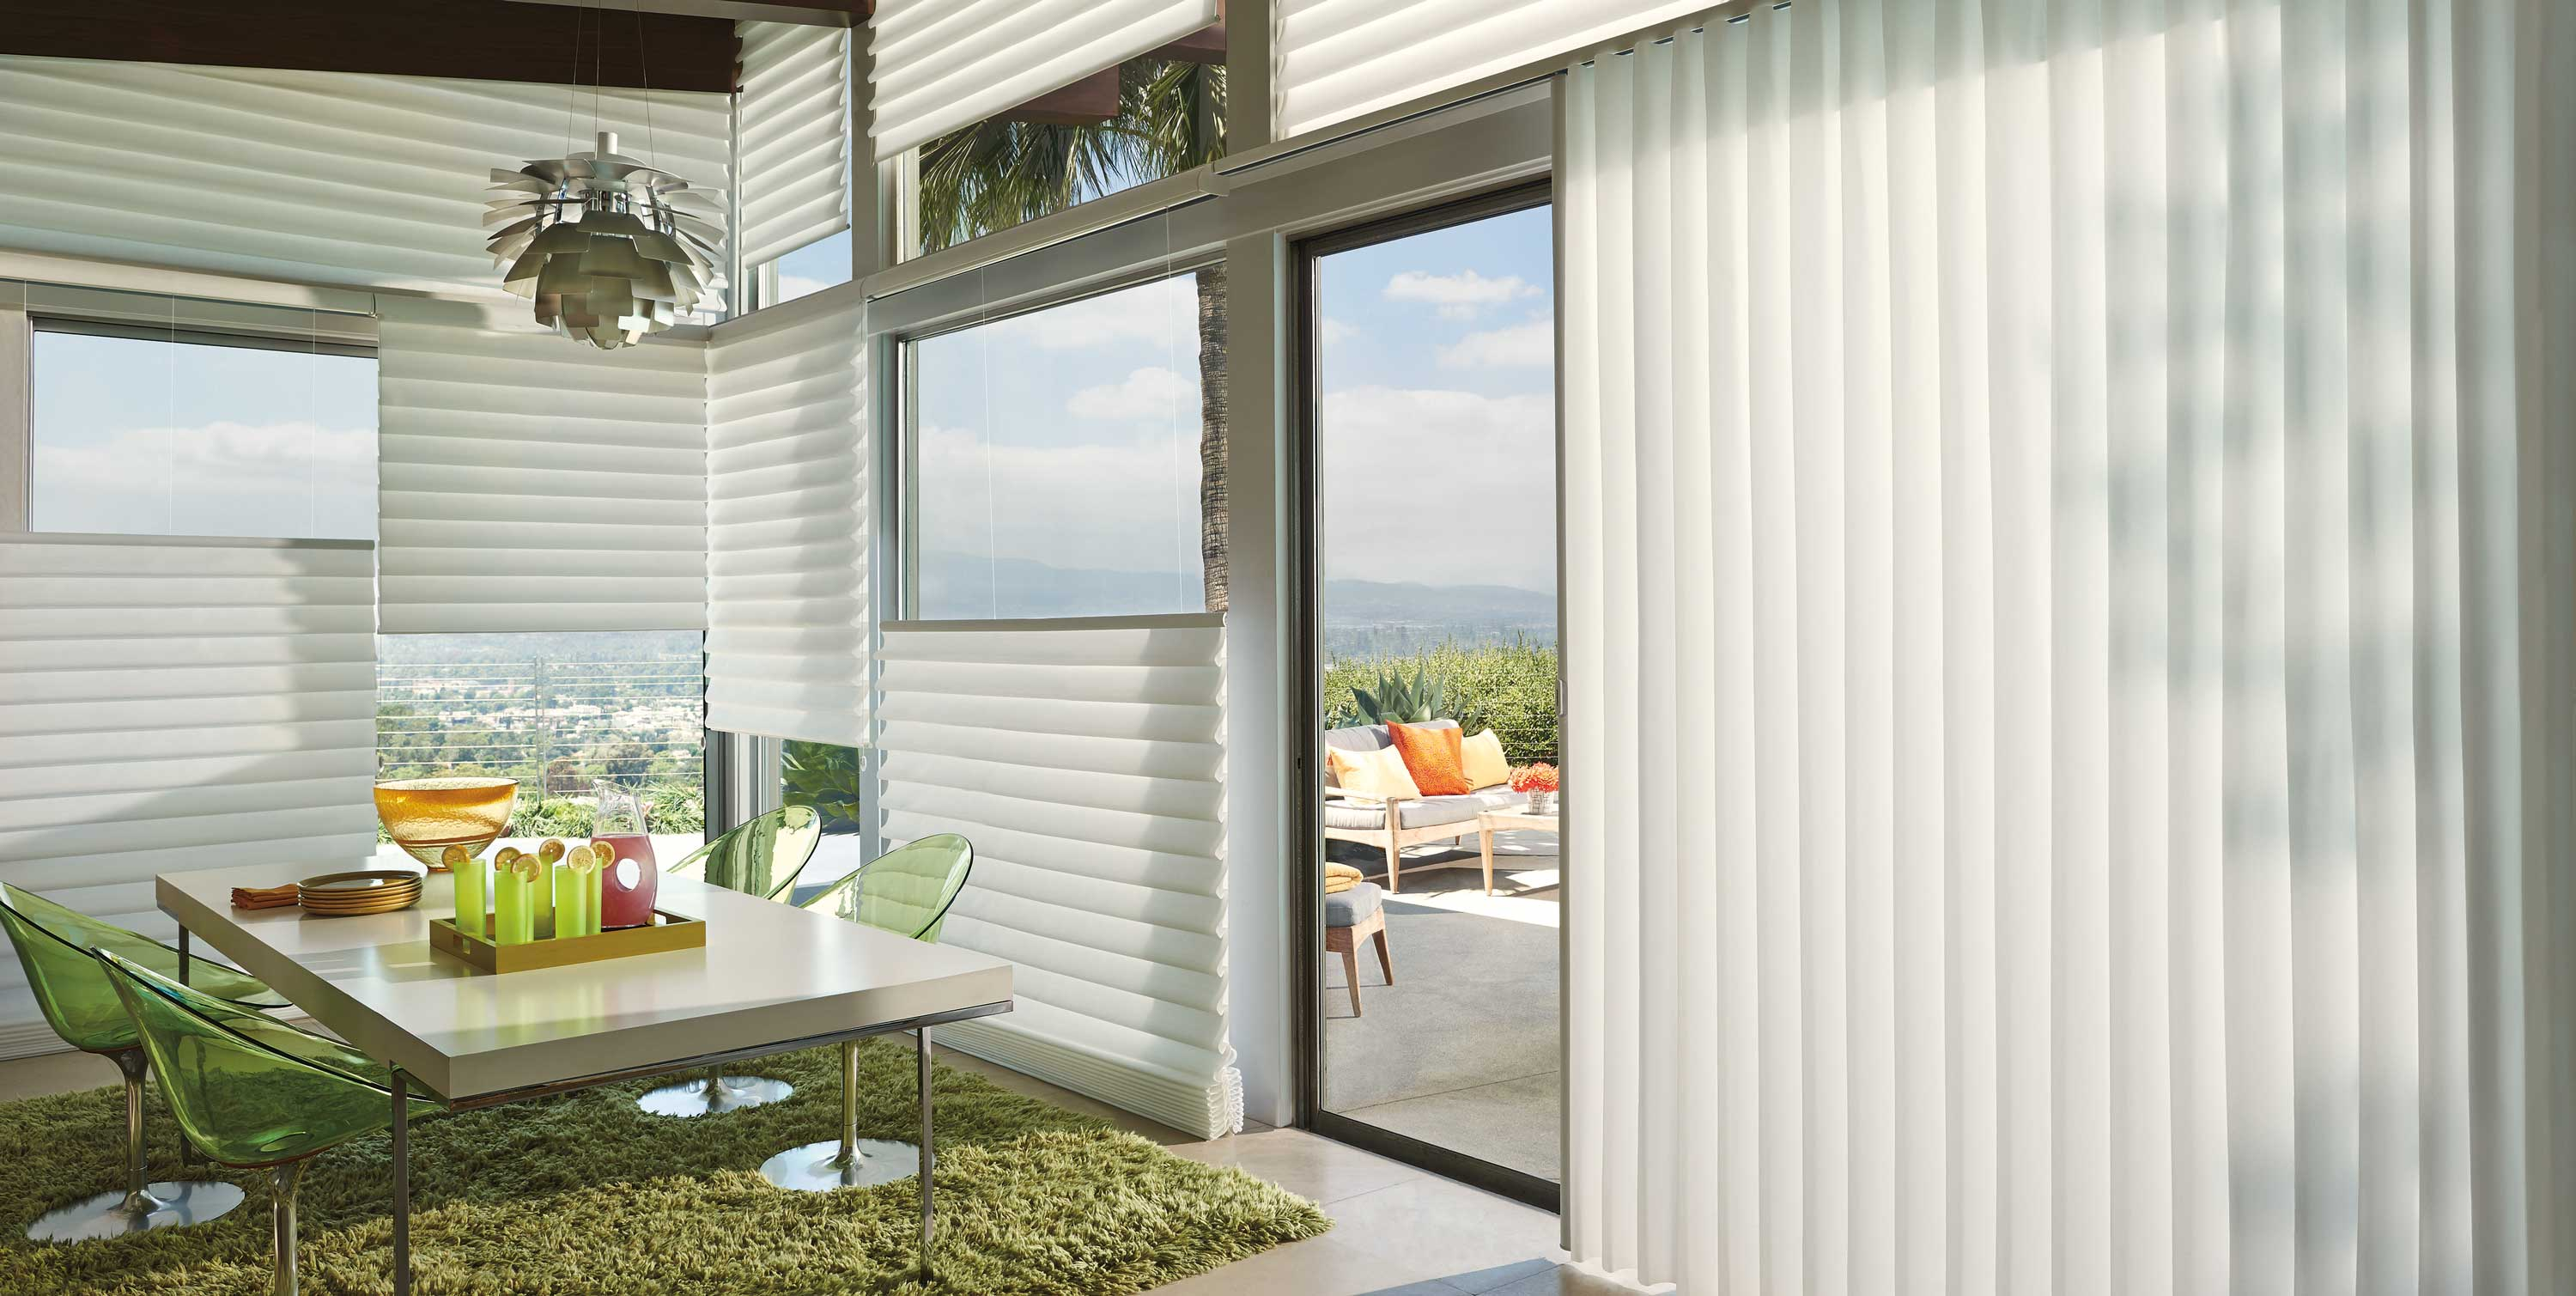 Windows and sliding glass door with Vignette.